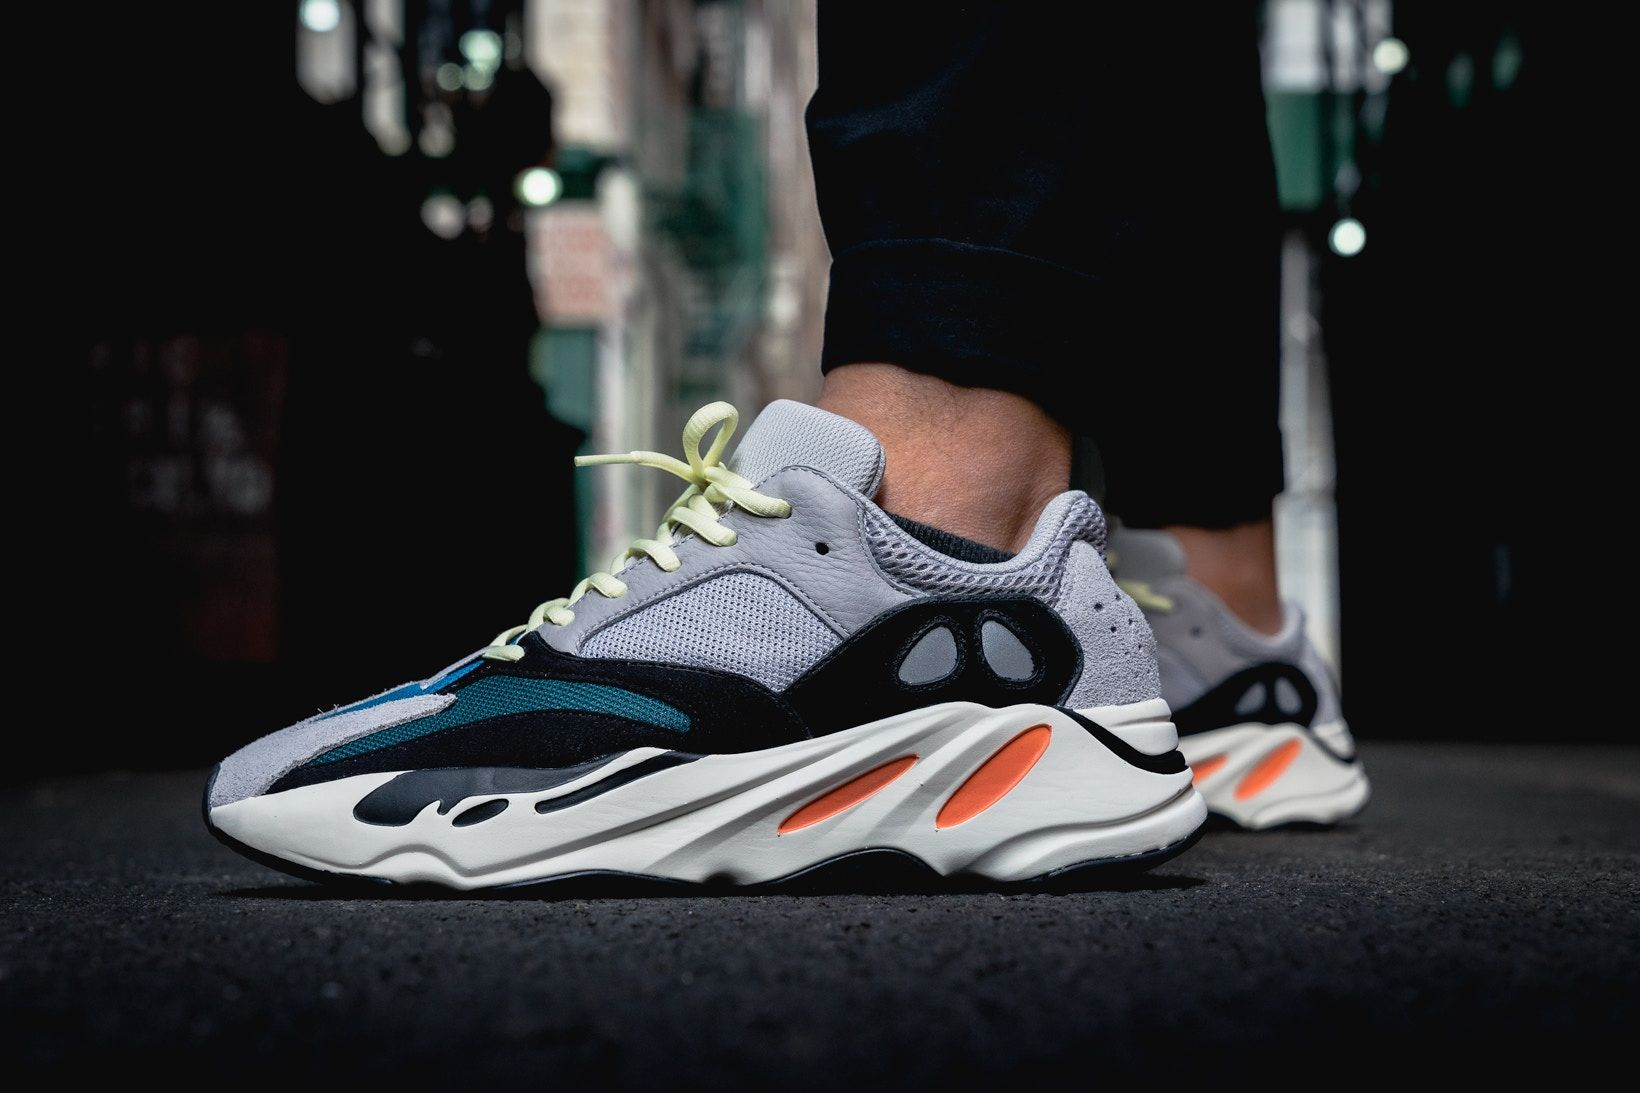 c75e3f3c682 adidas YEEZY BOOST 700 On Feet Closer Look Wave Runner Kanye West Kim  Kardashian footwear